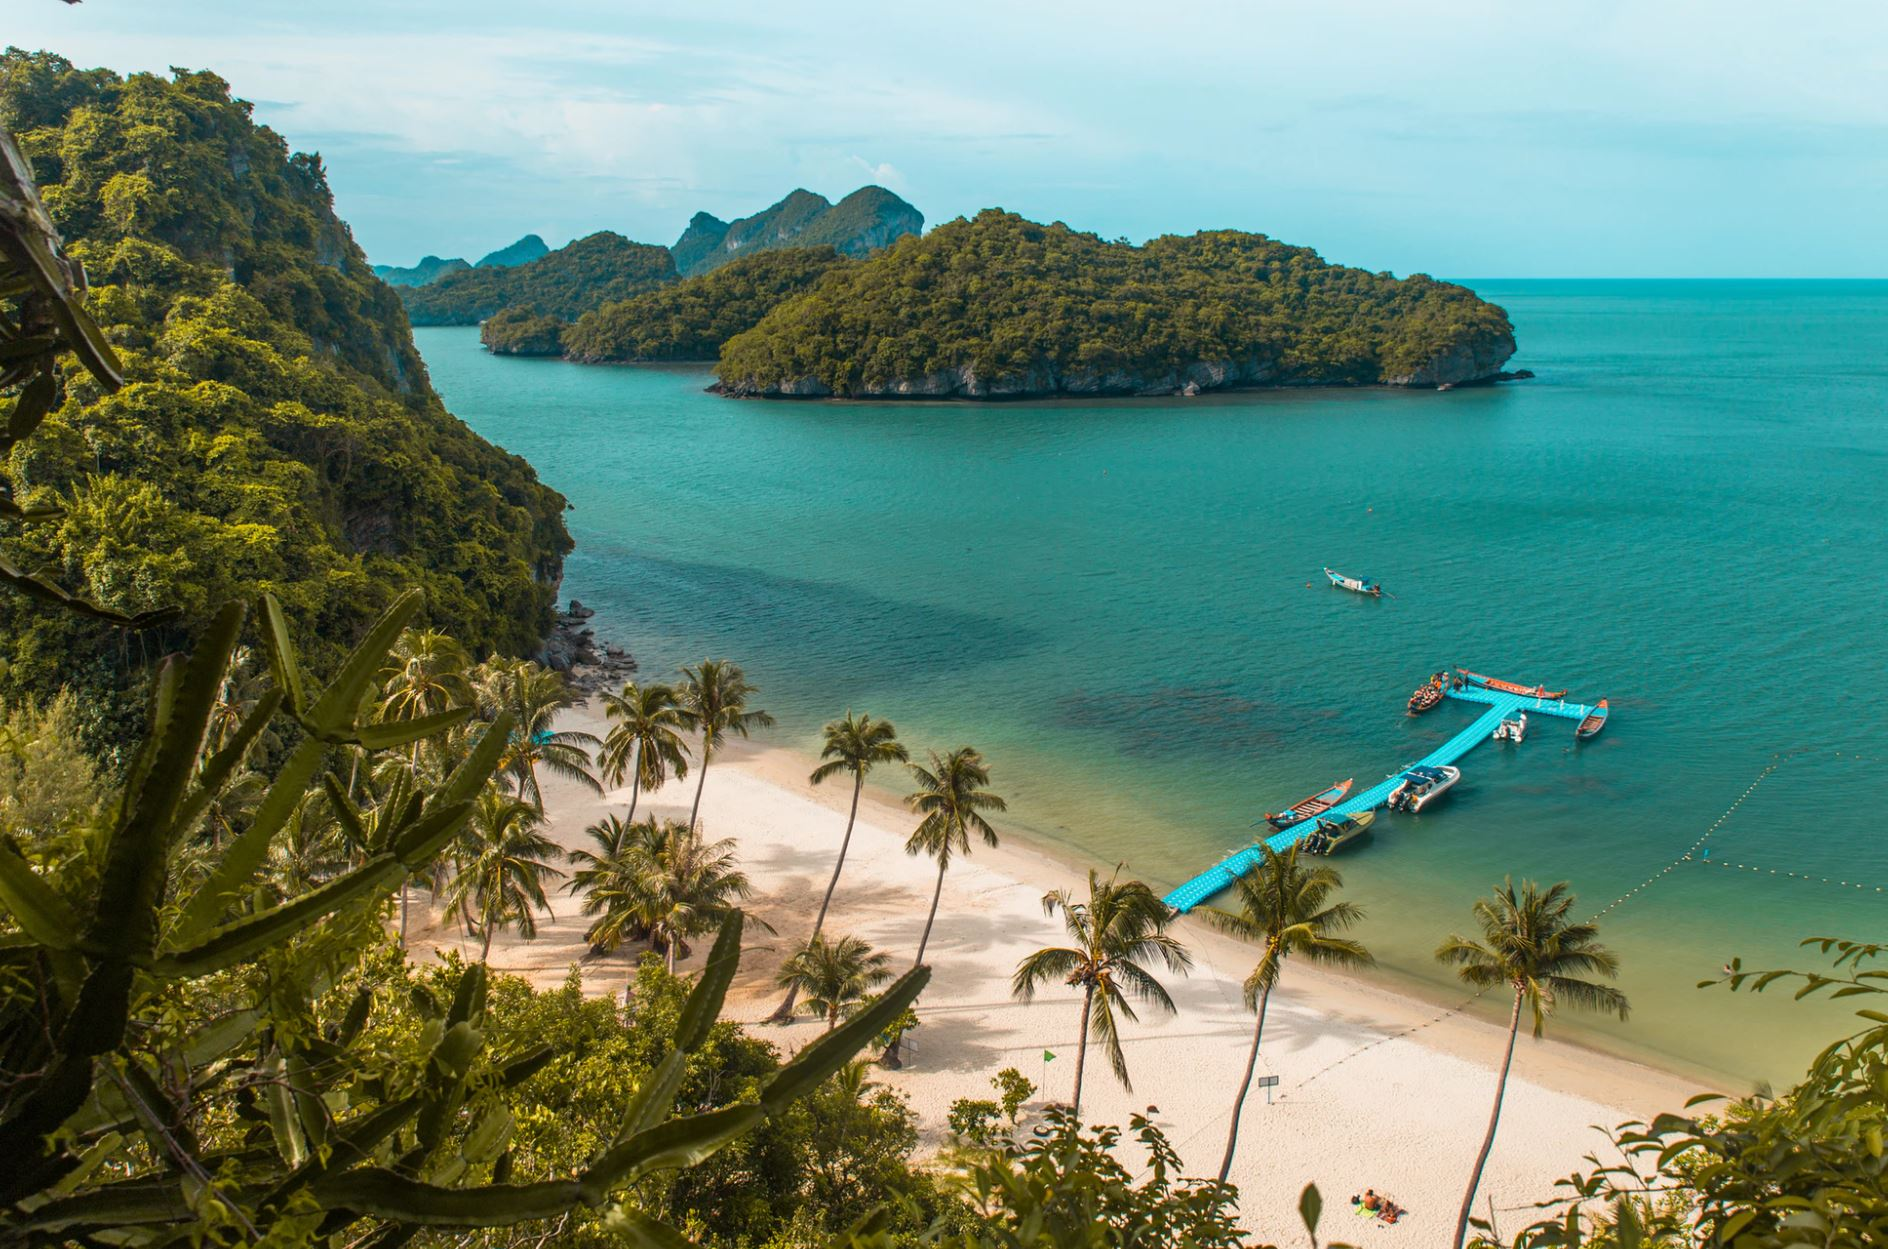 Gorgeous beaches await once you're done teaching for the year | 1905 Travellers/Unsplash